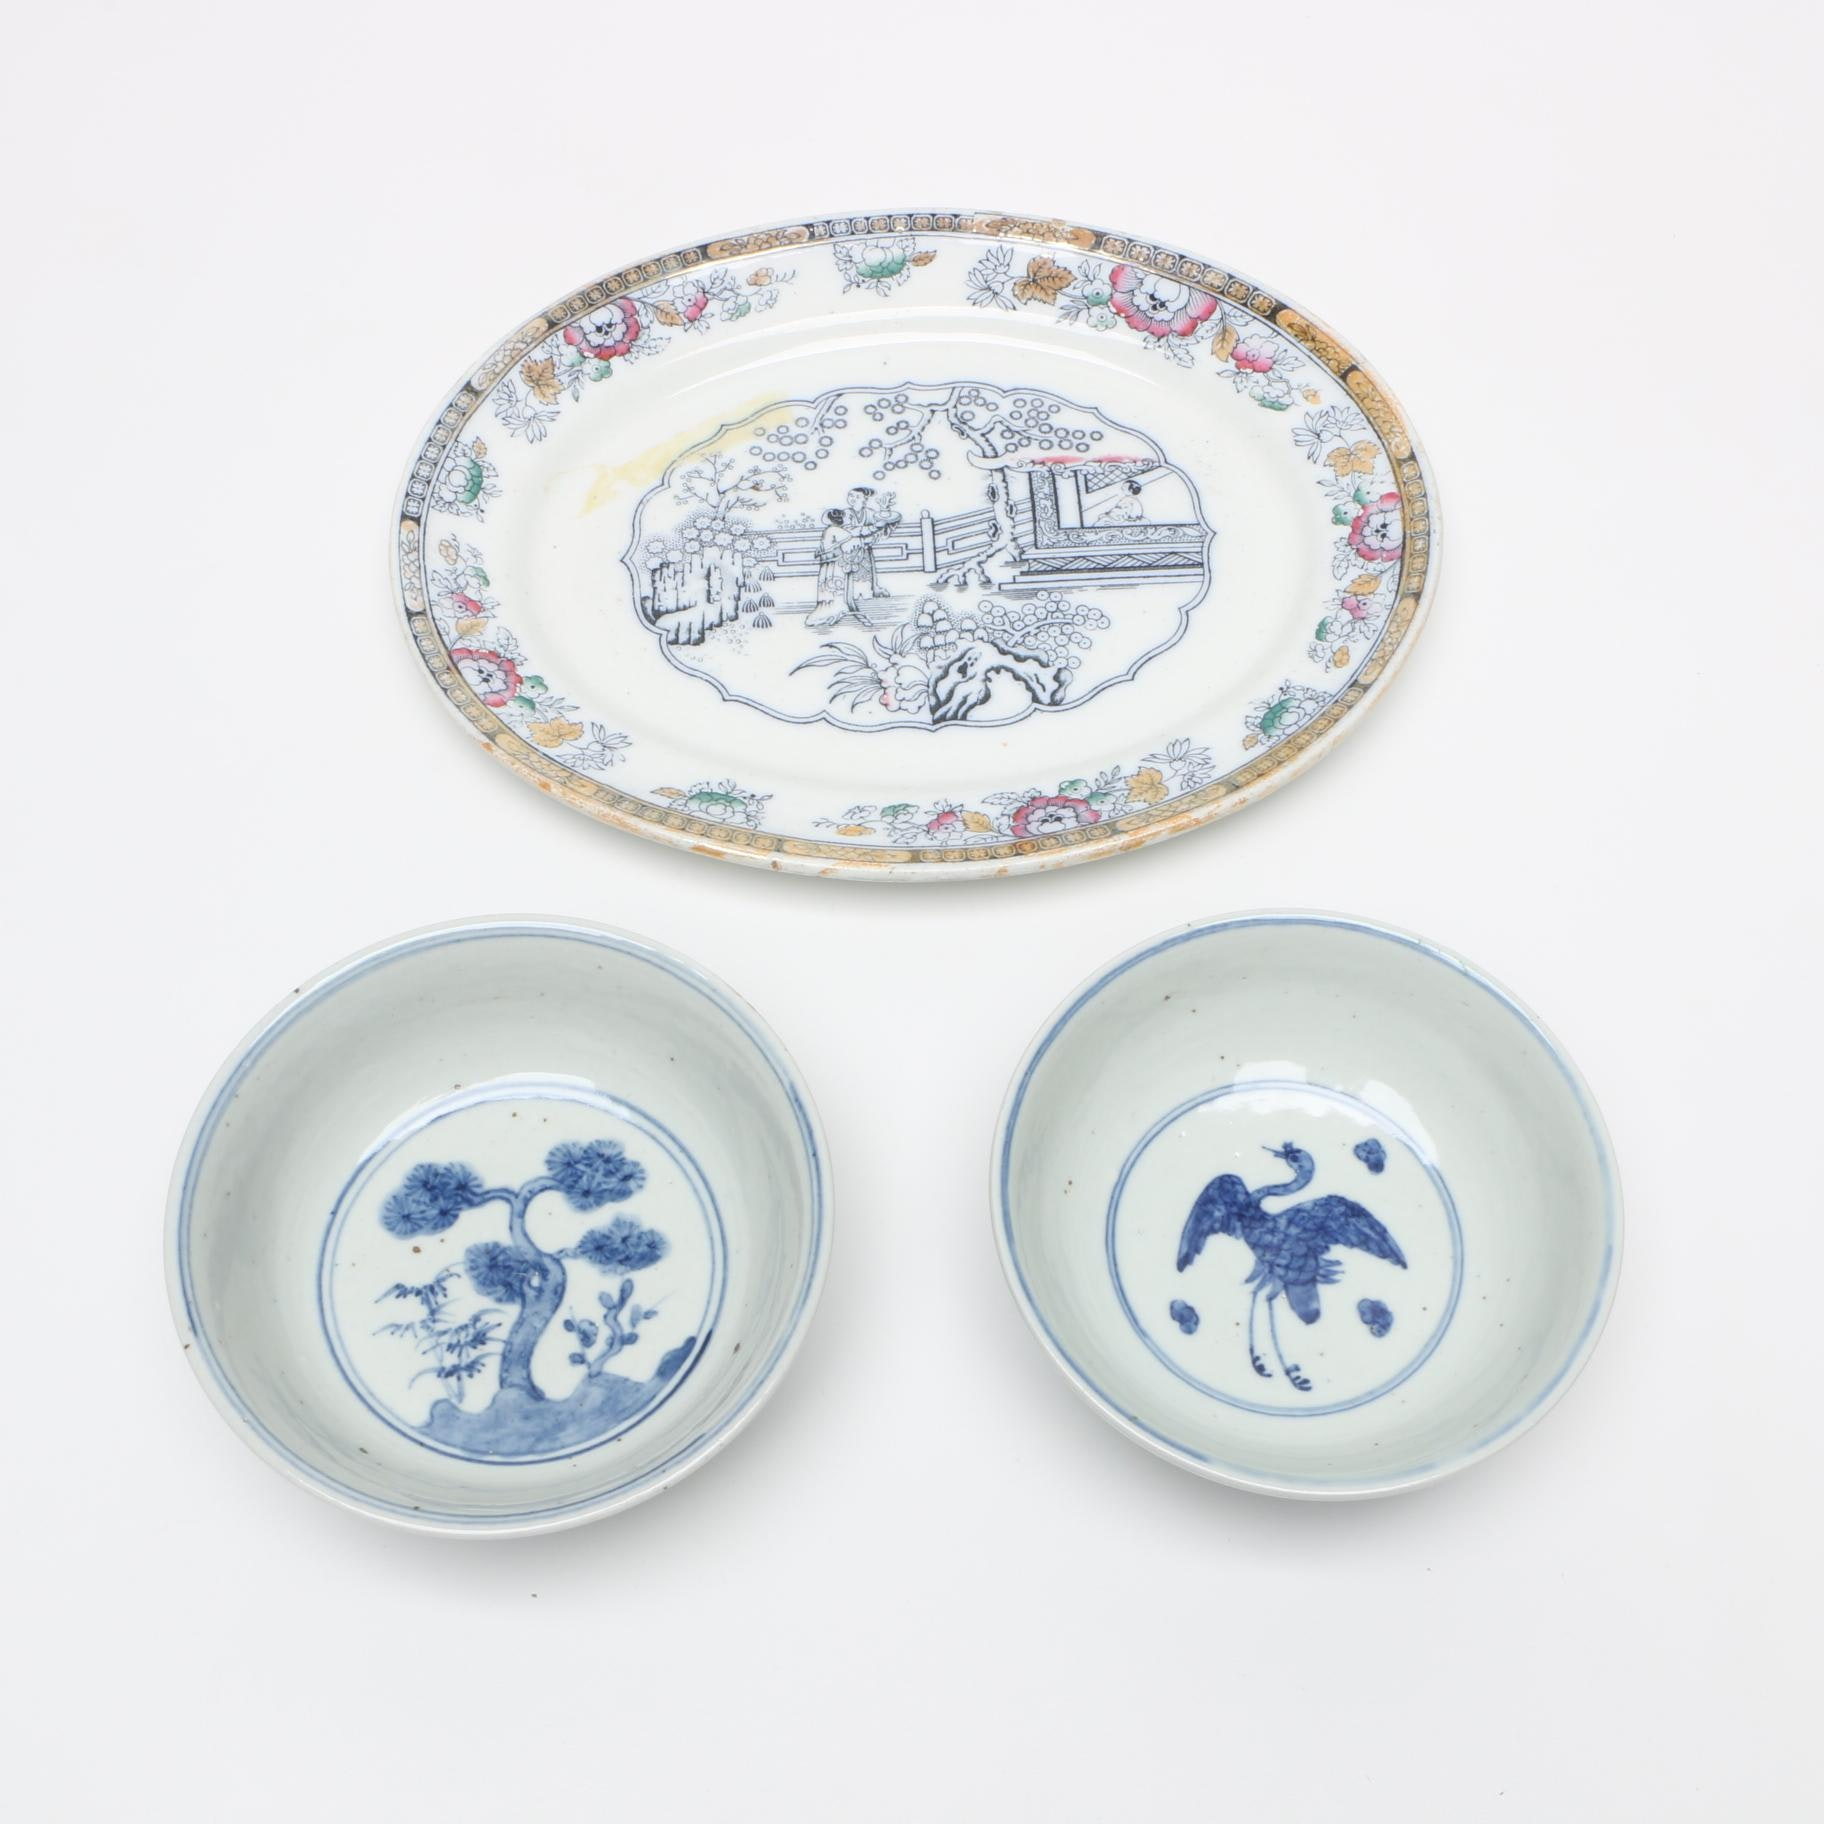 19th Century Hand-painted Bowls and Antique Ashworth Ironstone Platter